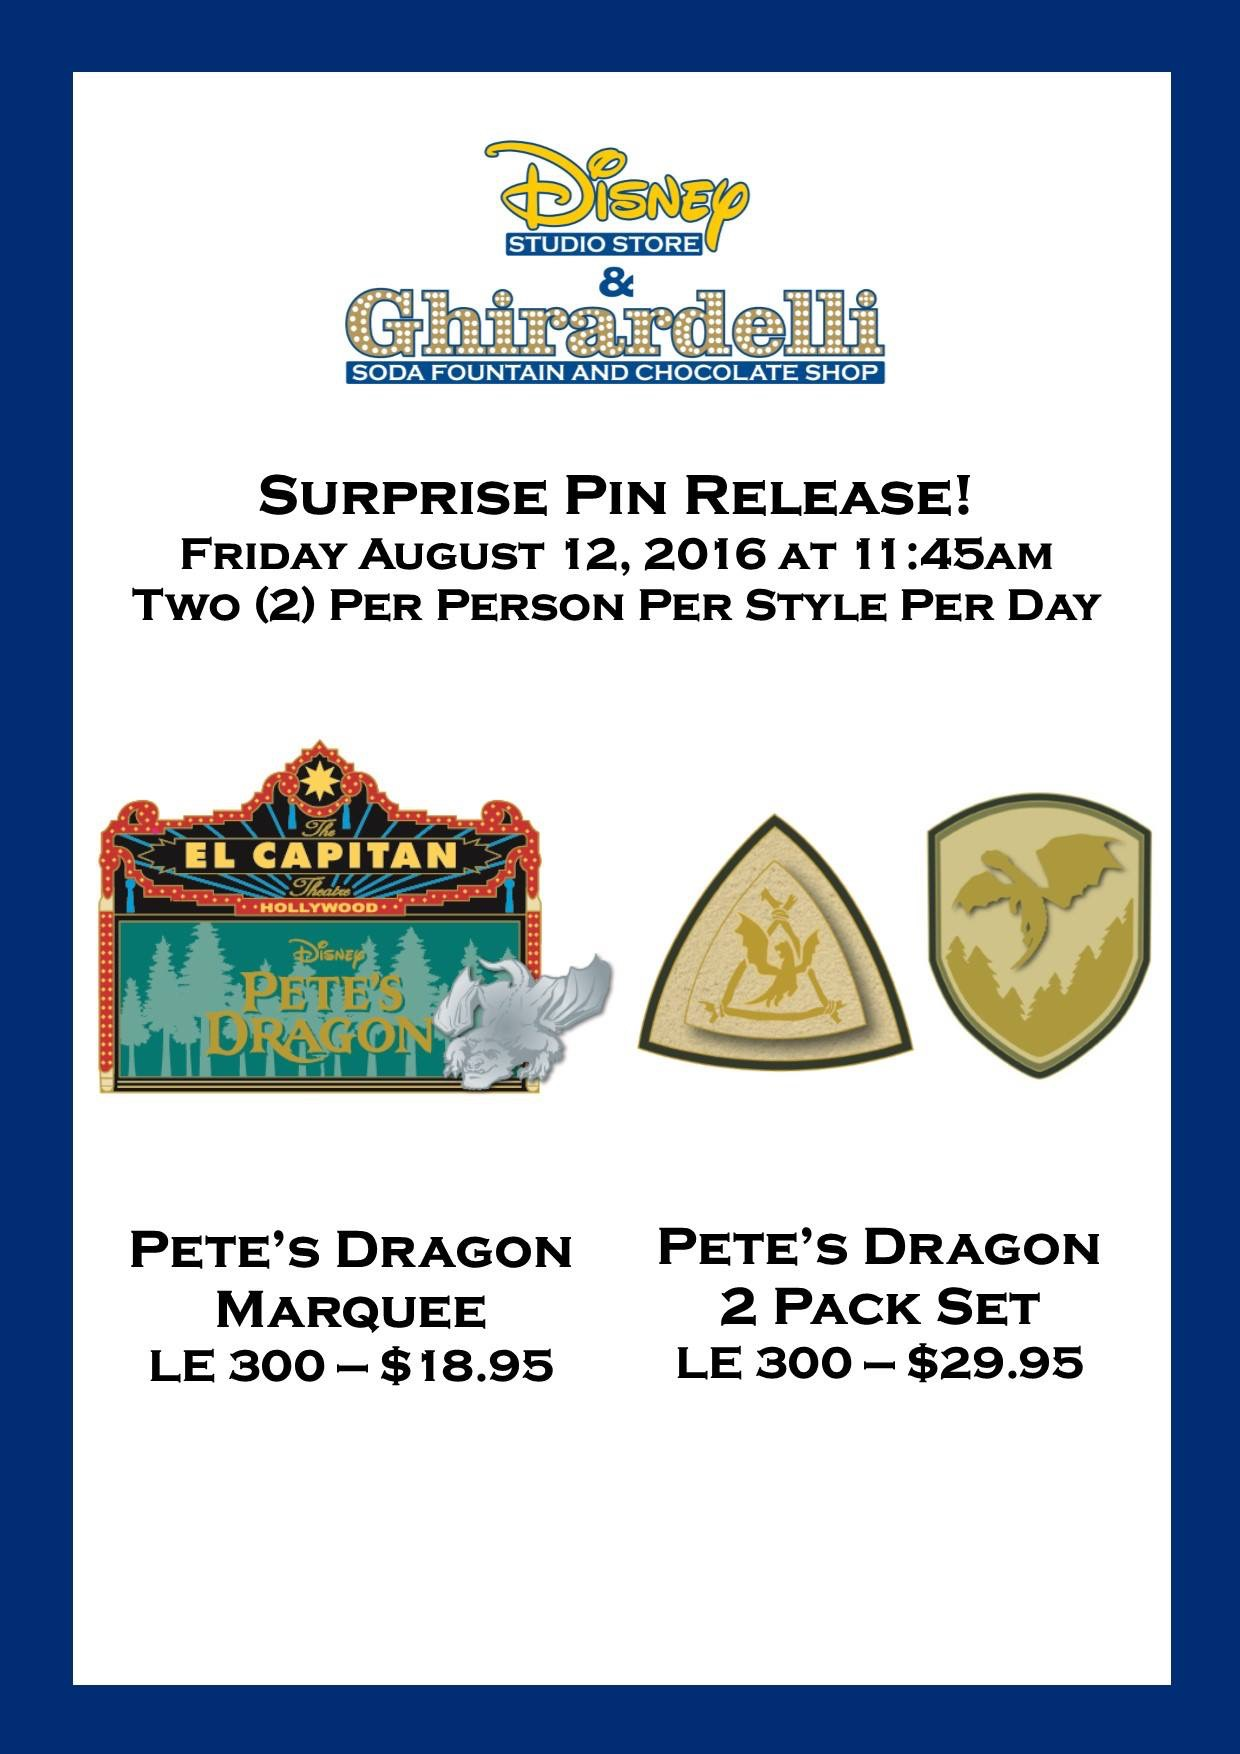 Pete's Dragon Surprise Pins Released